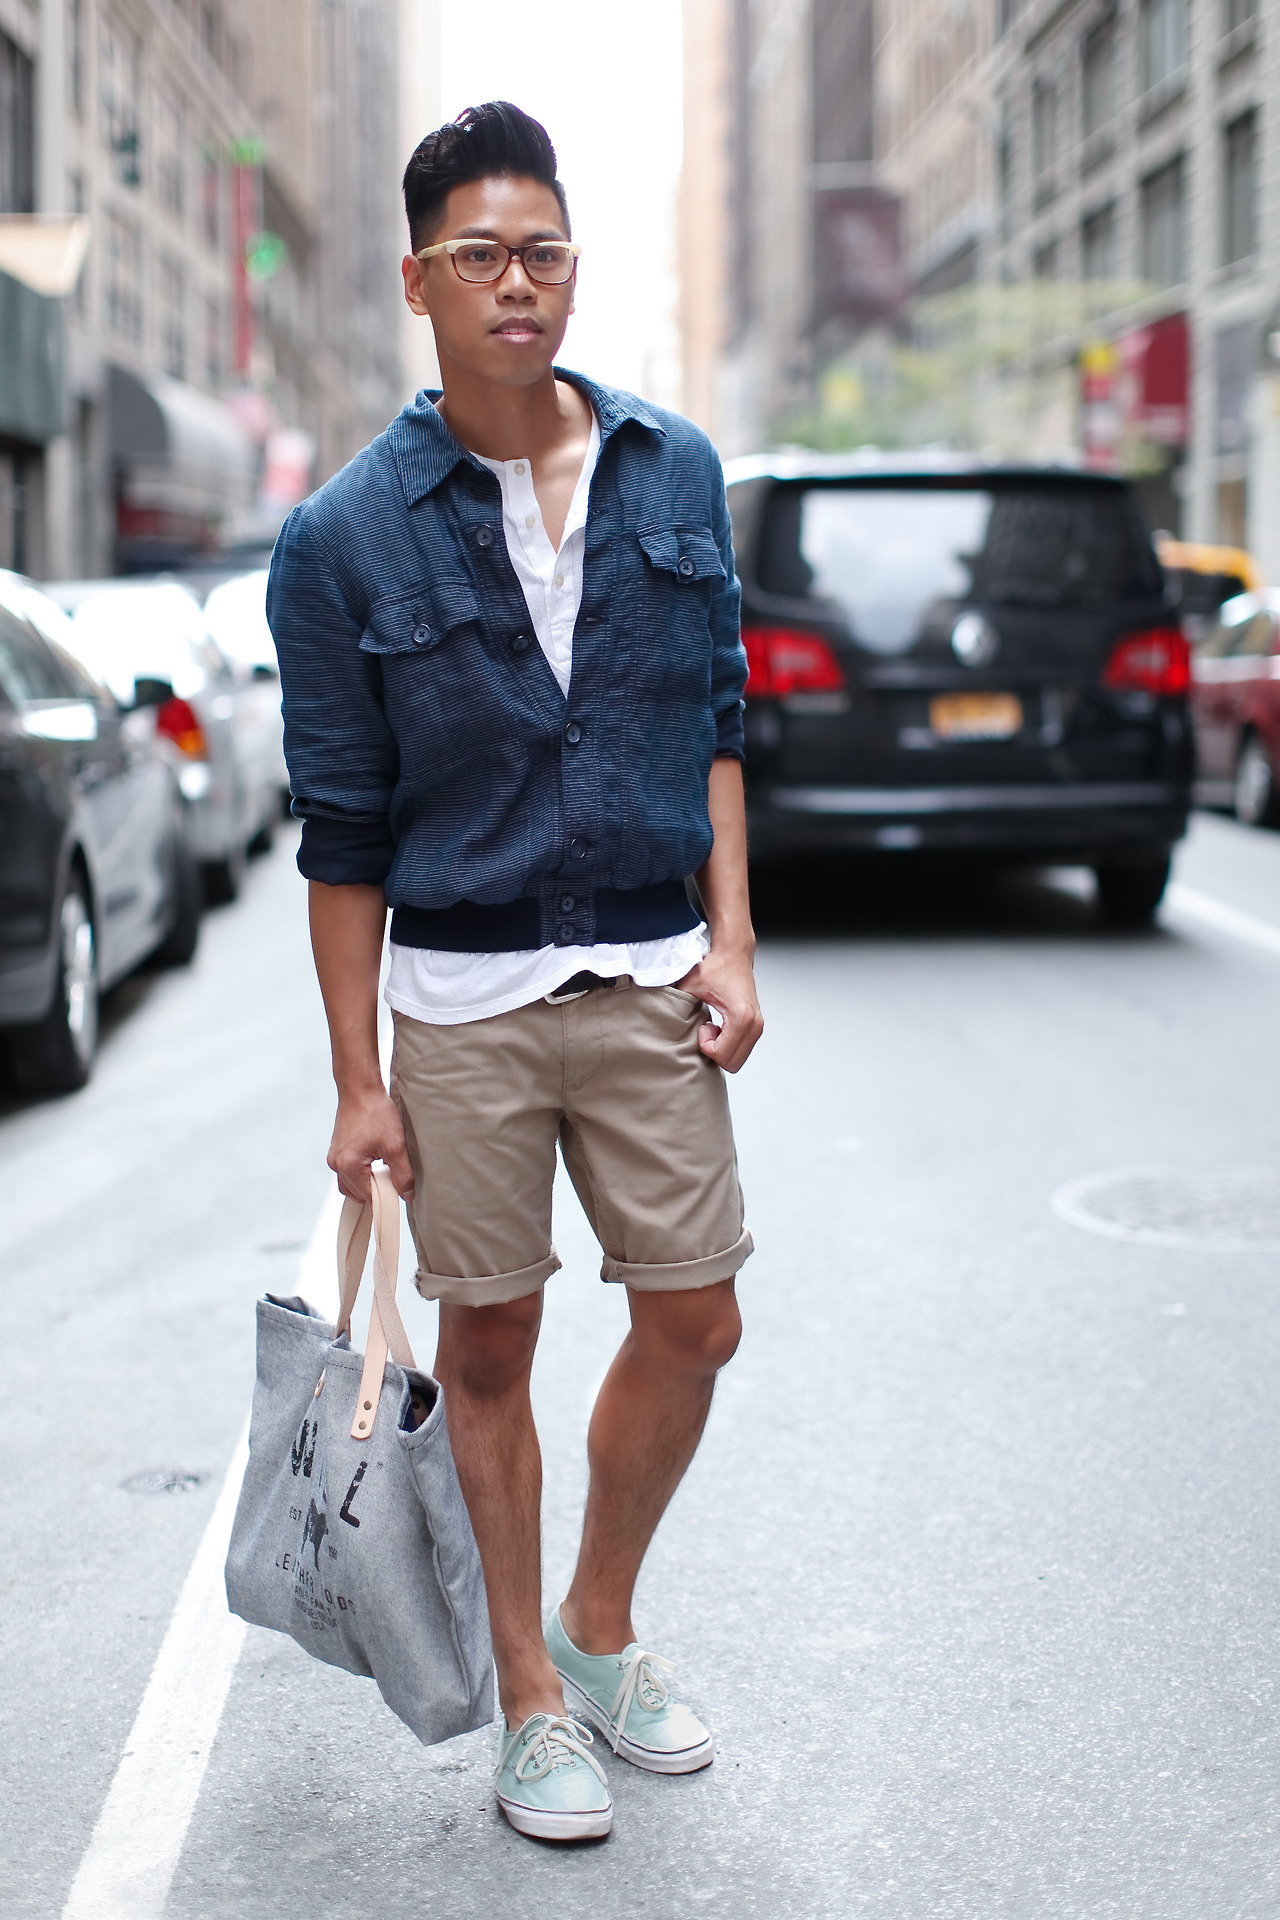 how to change your clothing style